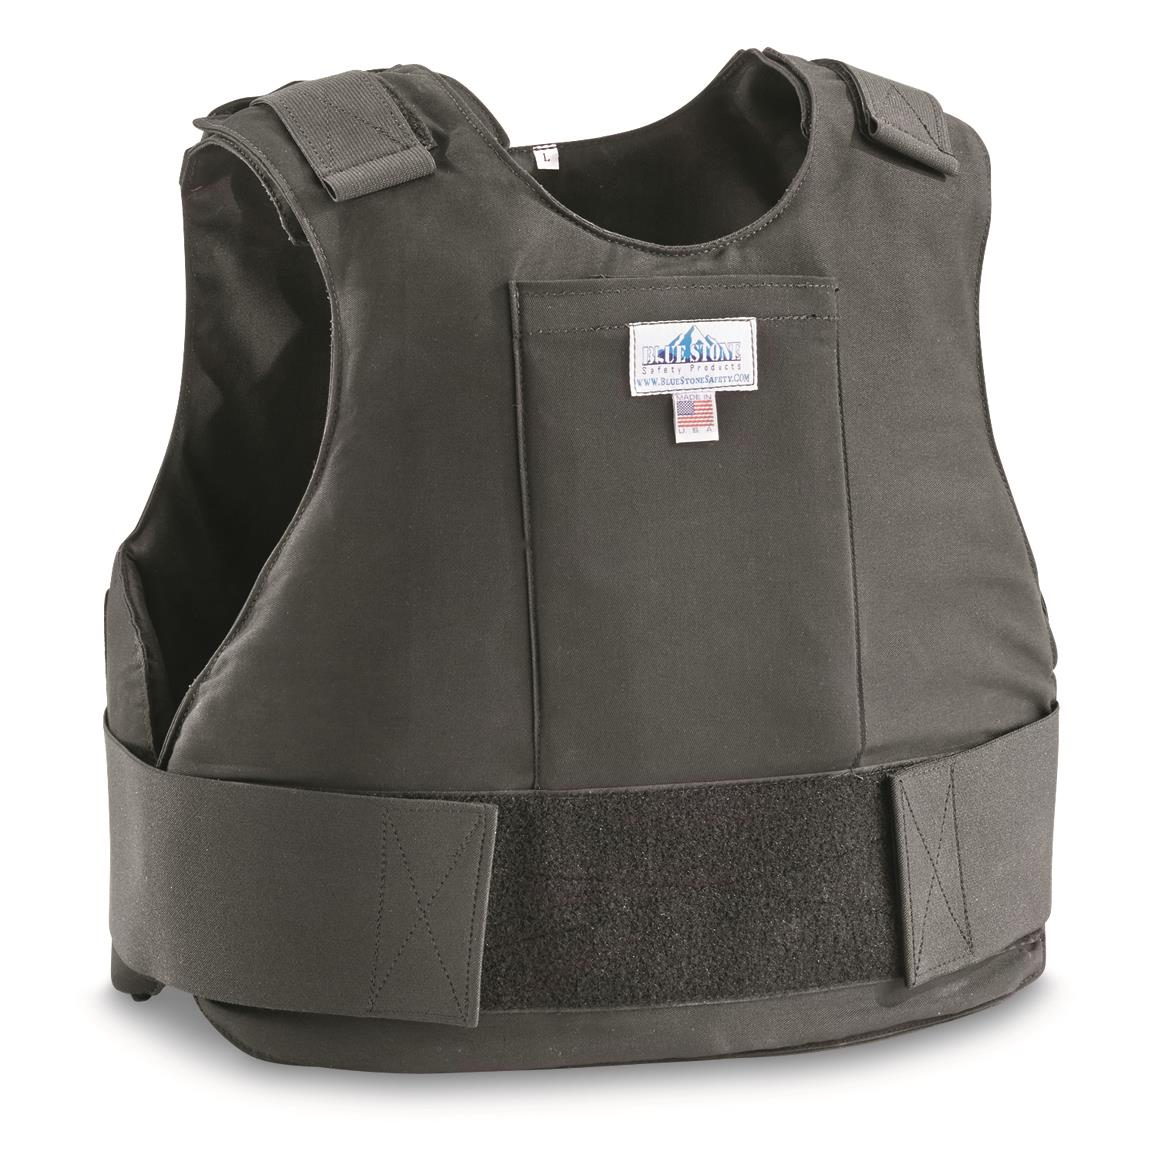 Blue Stone Level 3A Professional Full-Wrap Bullet Protection Vest